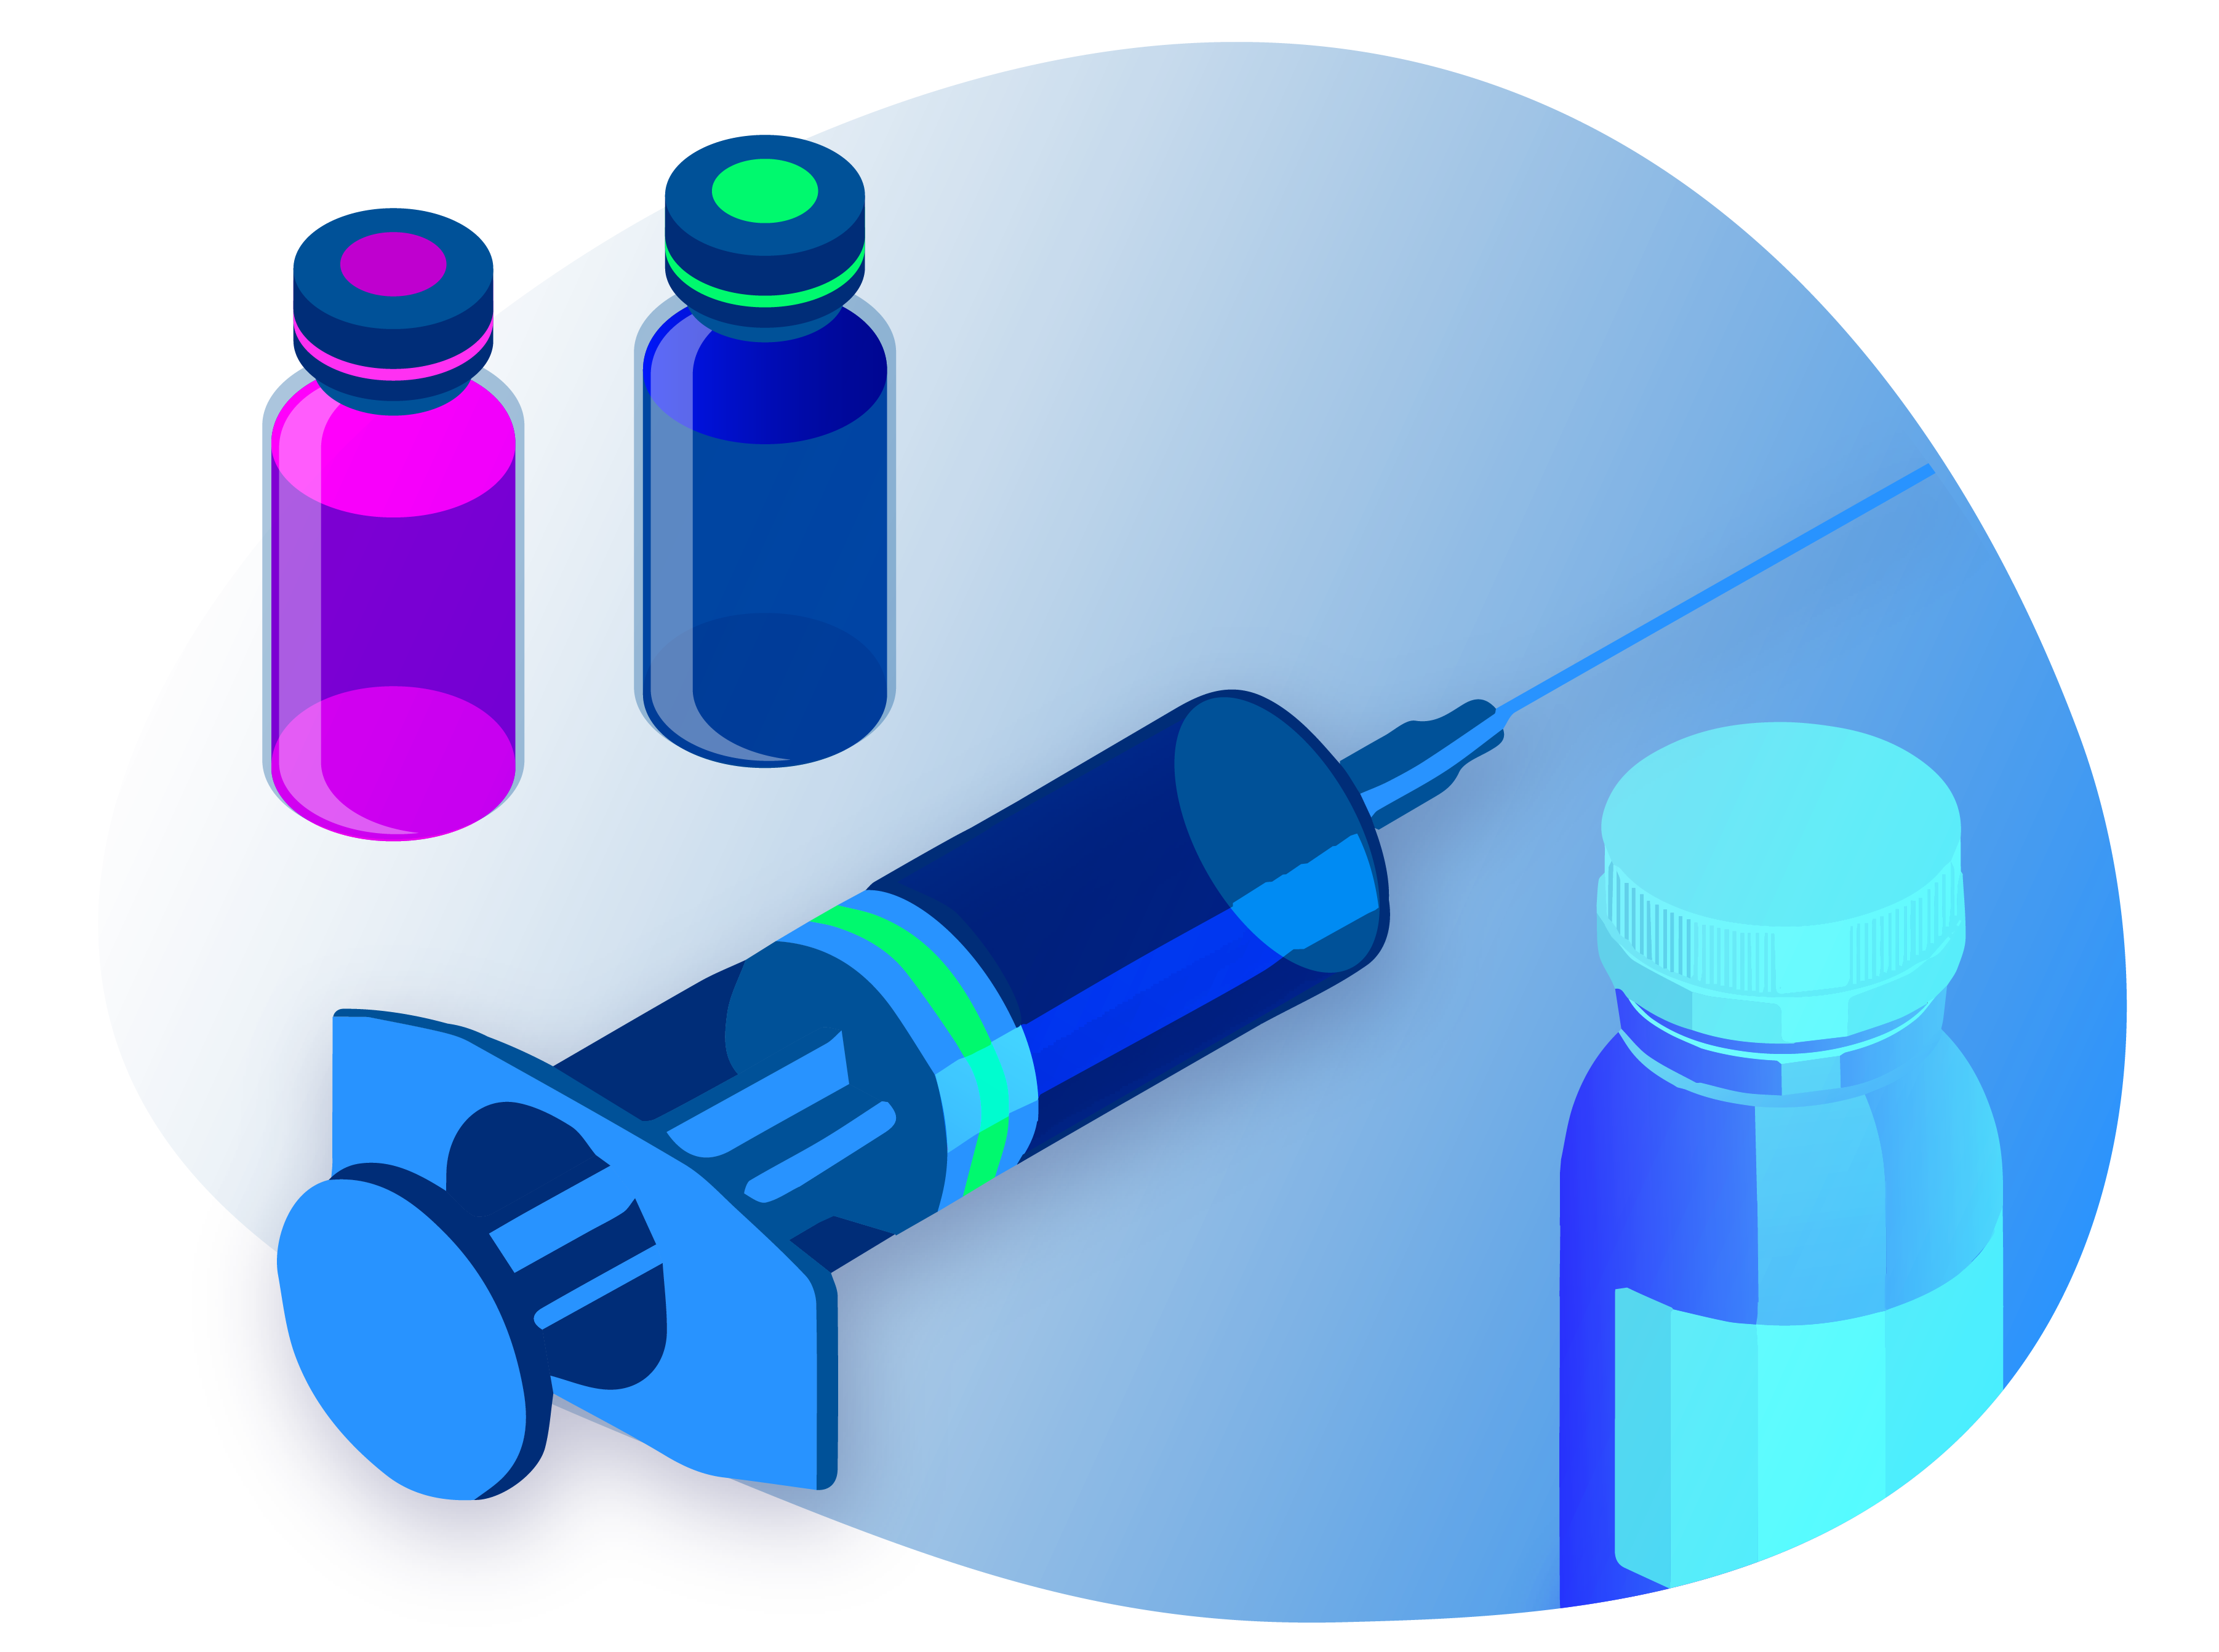 Vials of medication next to a syringe for vaccination